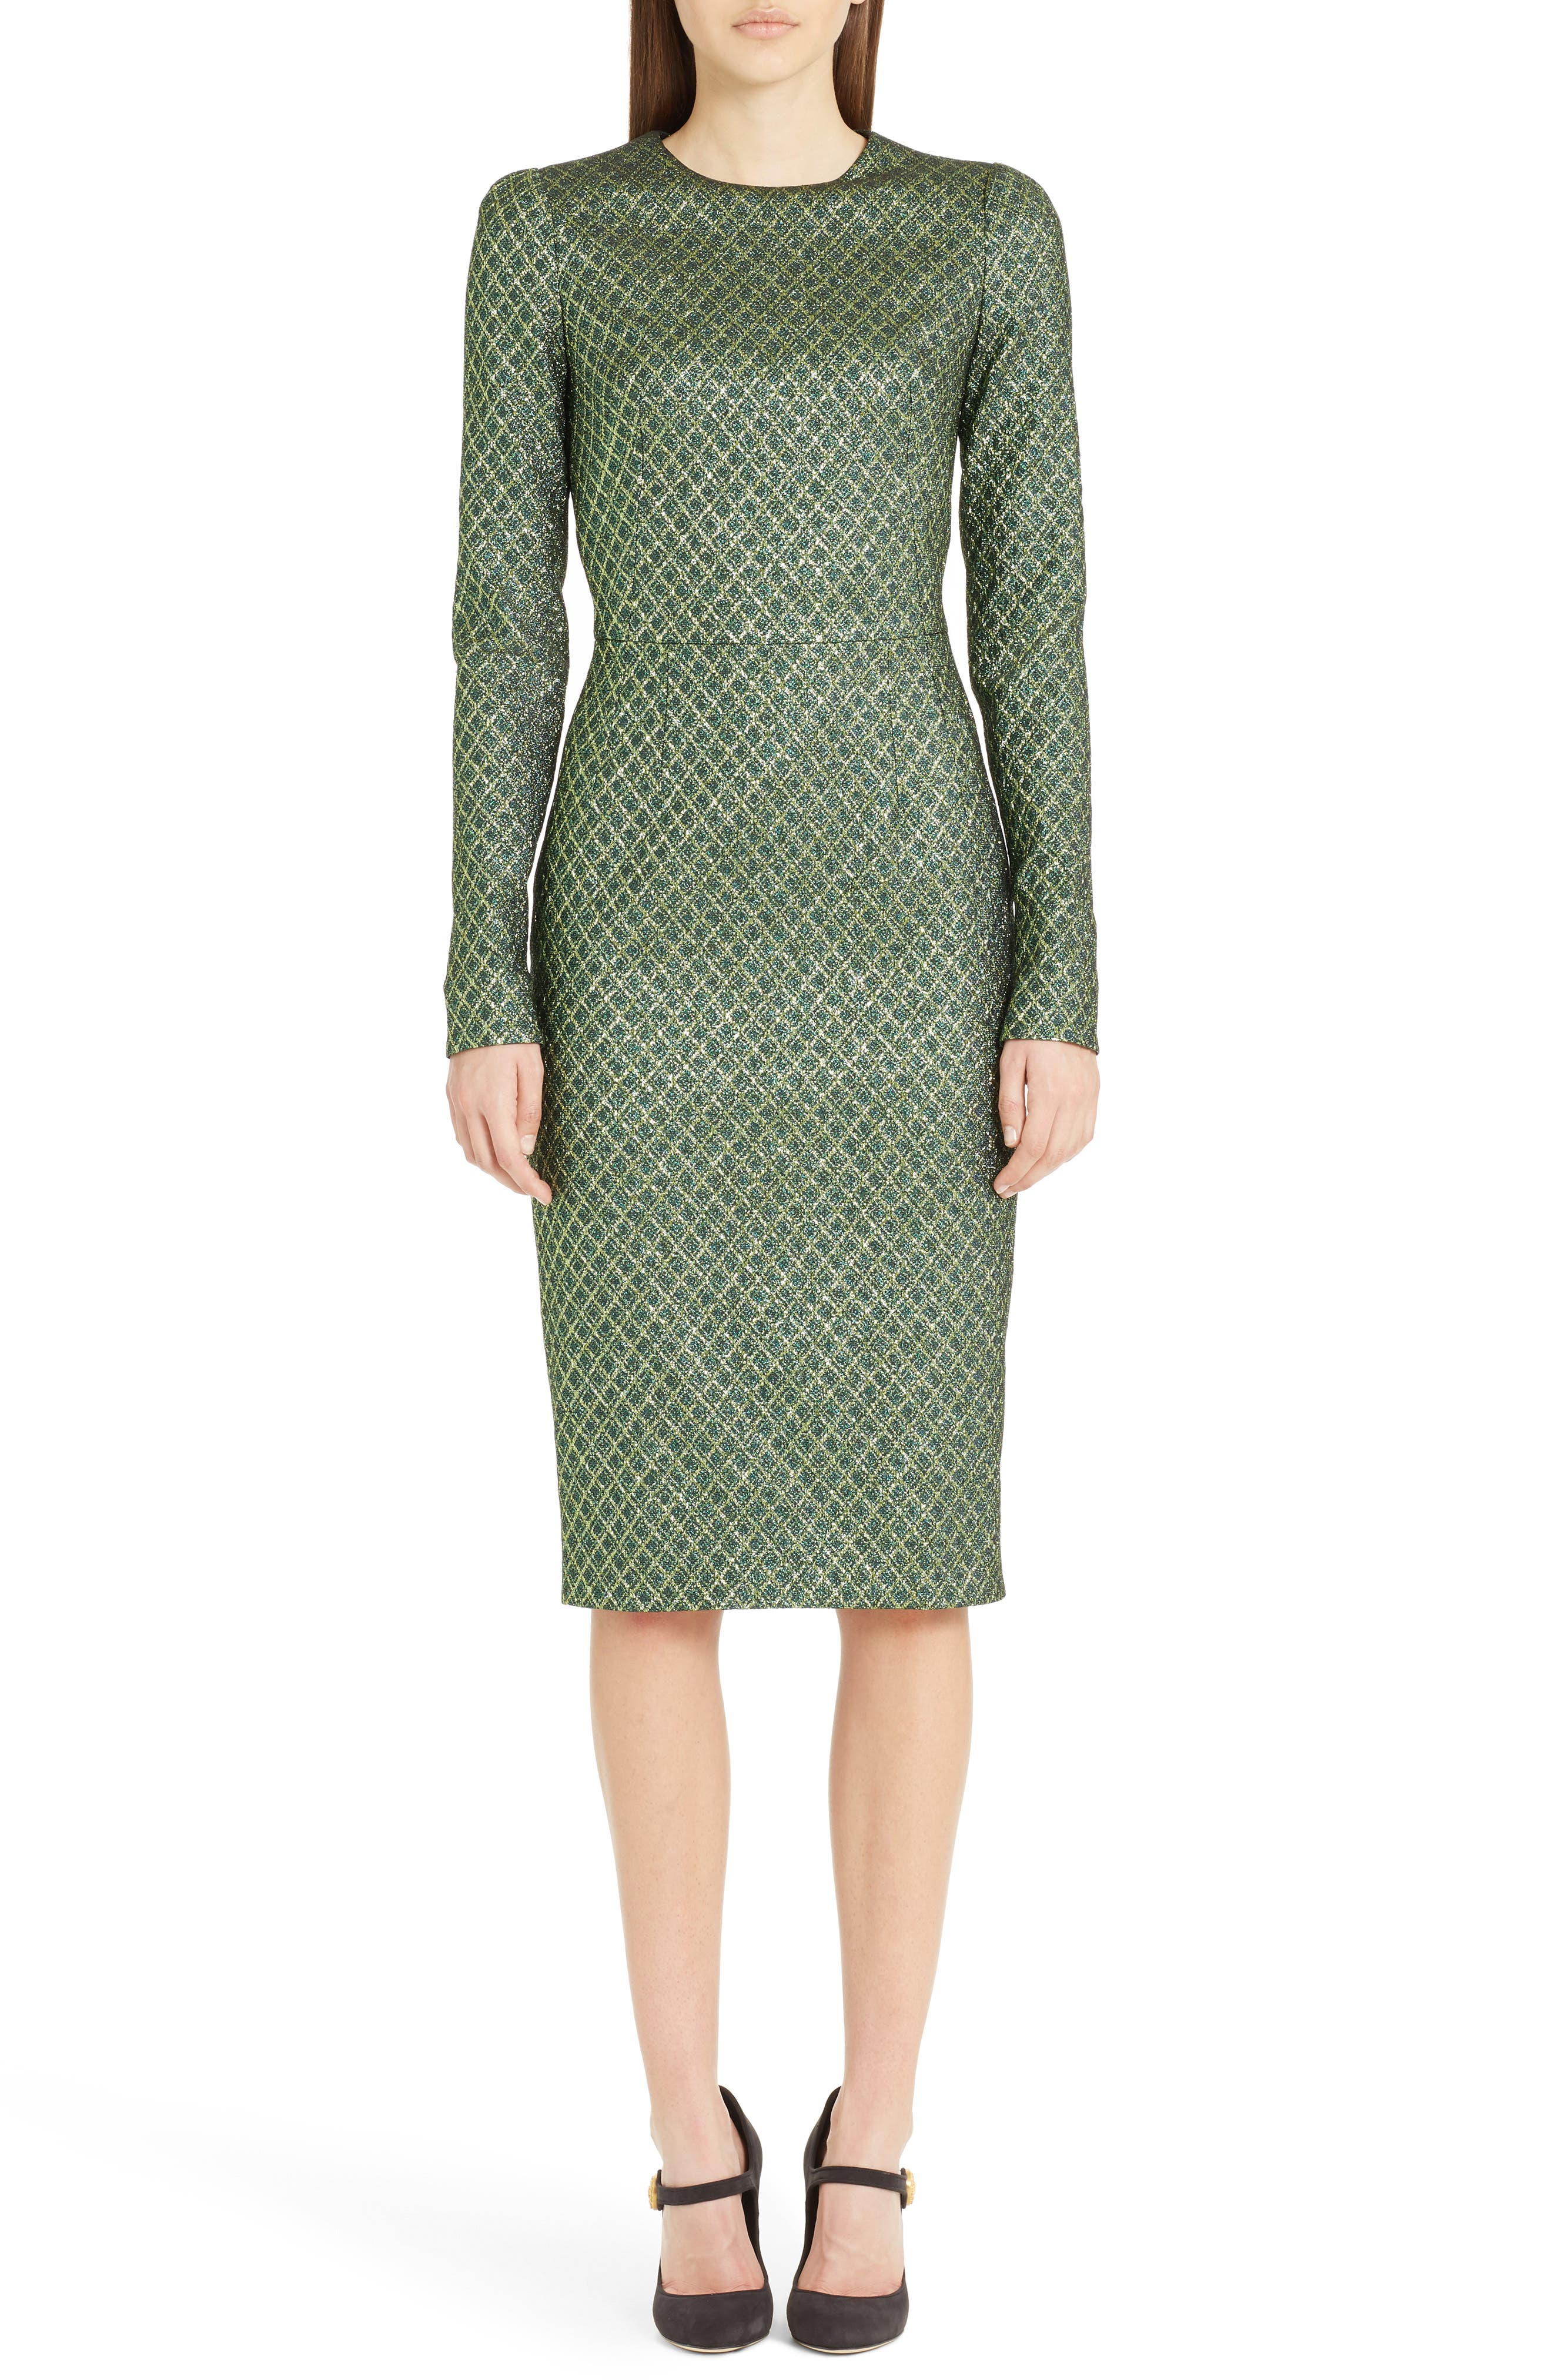 Dolce&Gabbana Lamé Jacquard Sheath Dress